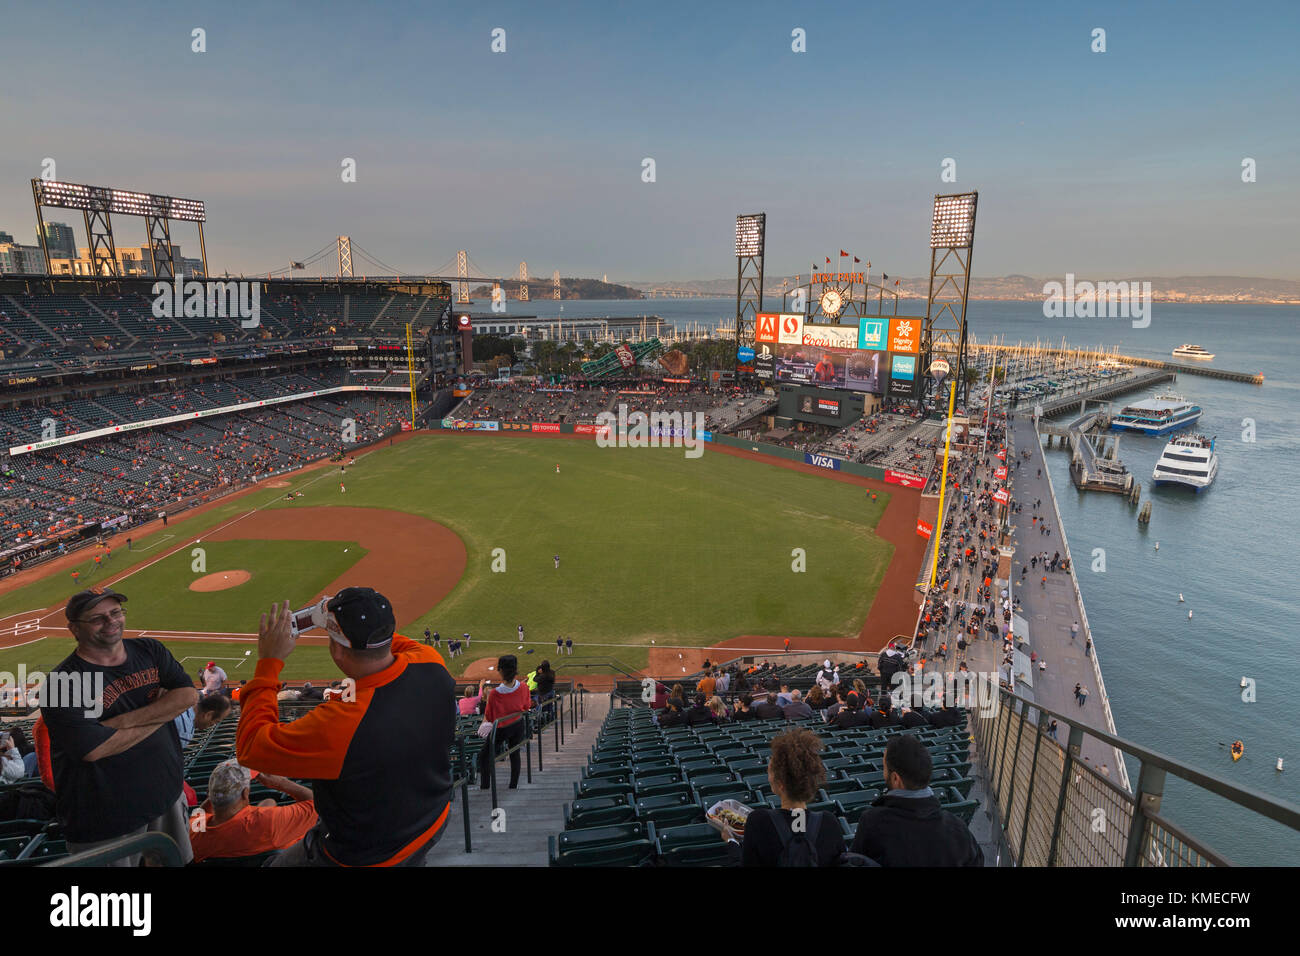 Att ballpark, accueil de l'équipe de baseball des Giants de San Francisco, San Francisco, California, USA Photo Stock